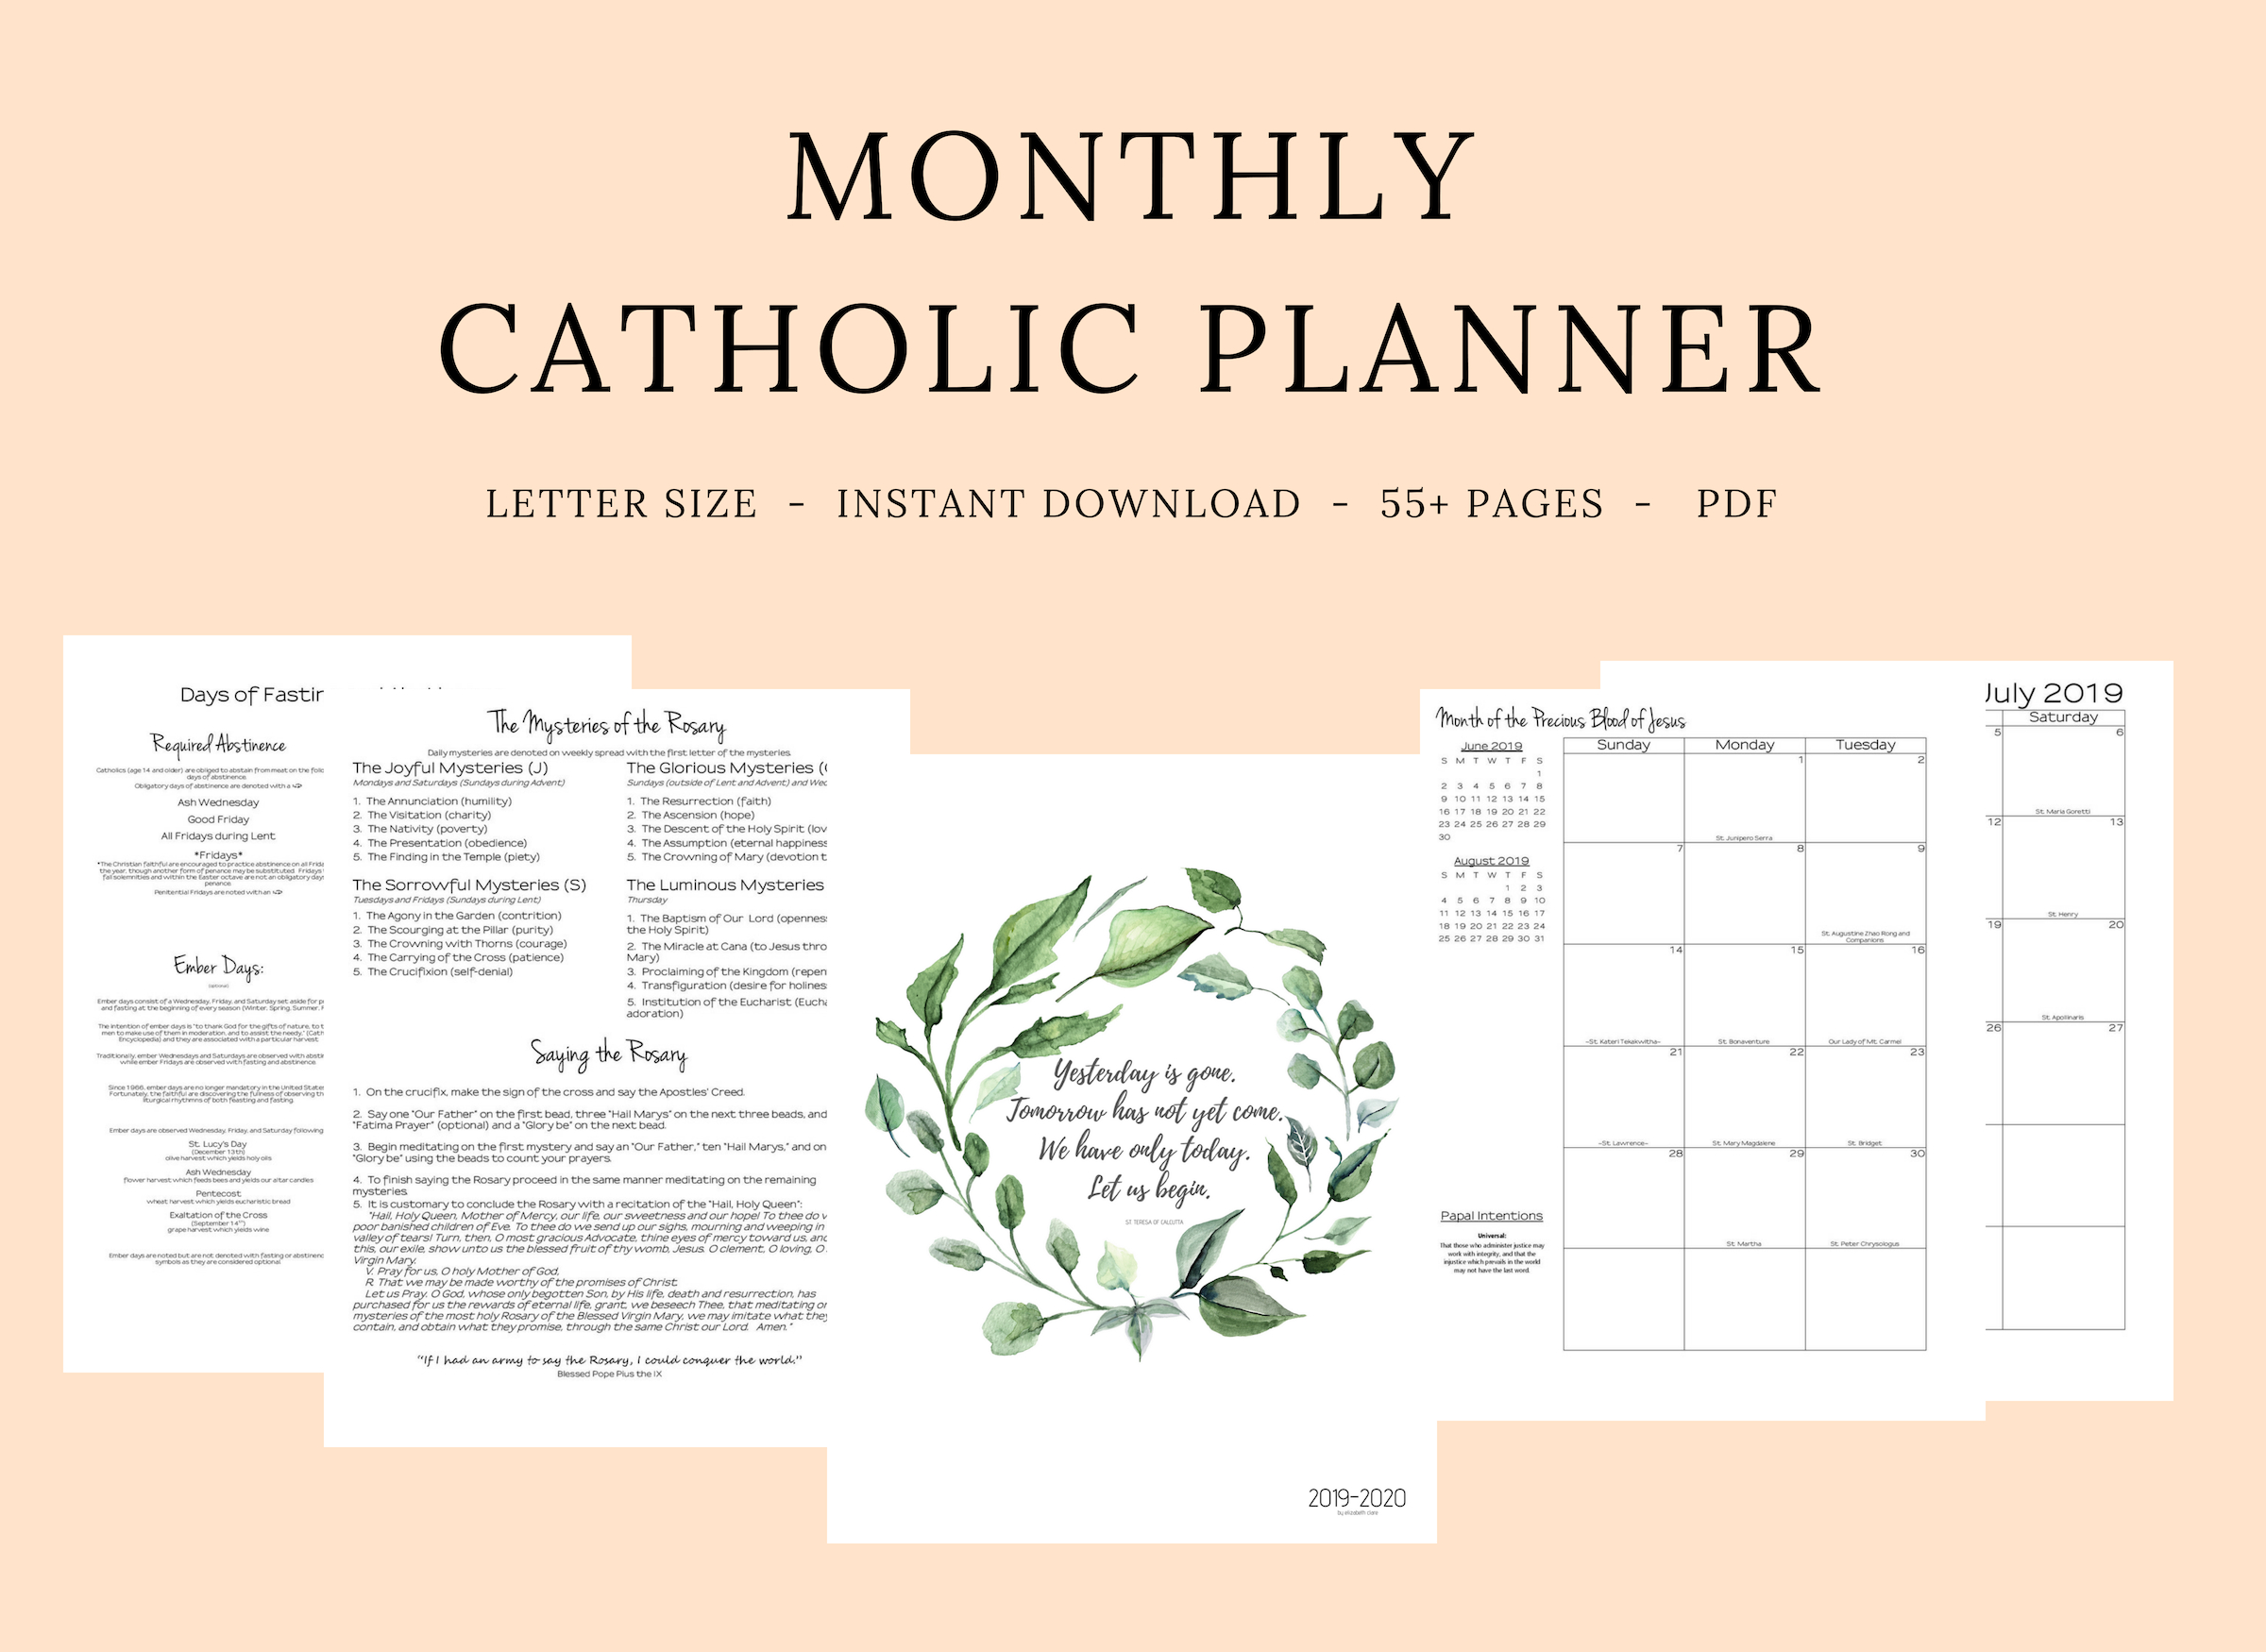 2019 2020 Catholic Monthly Planner regarding Catholic Liturgical Calendar 2020 With Daily Readings